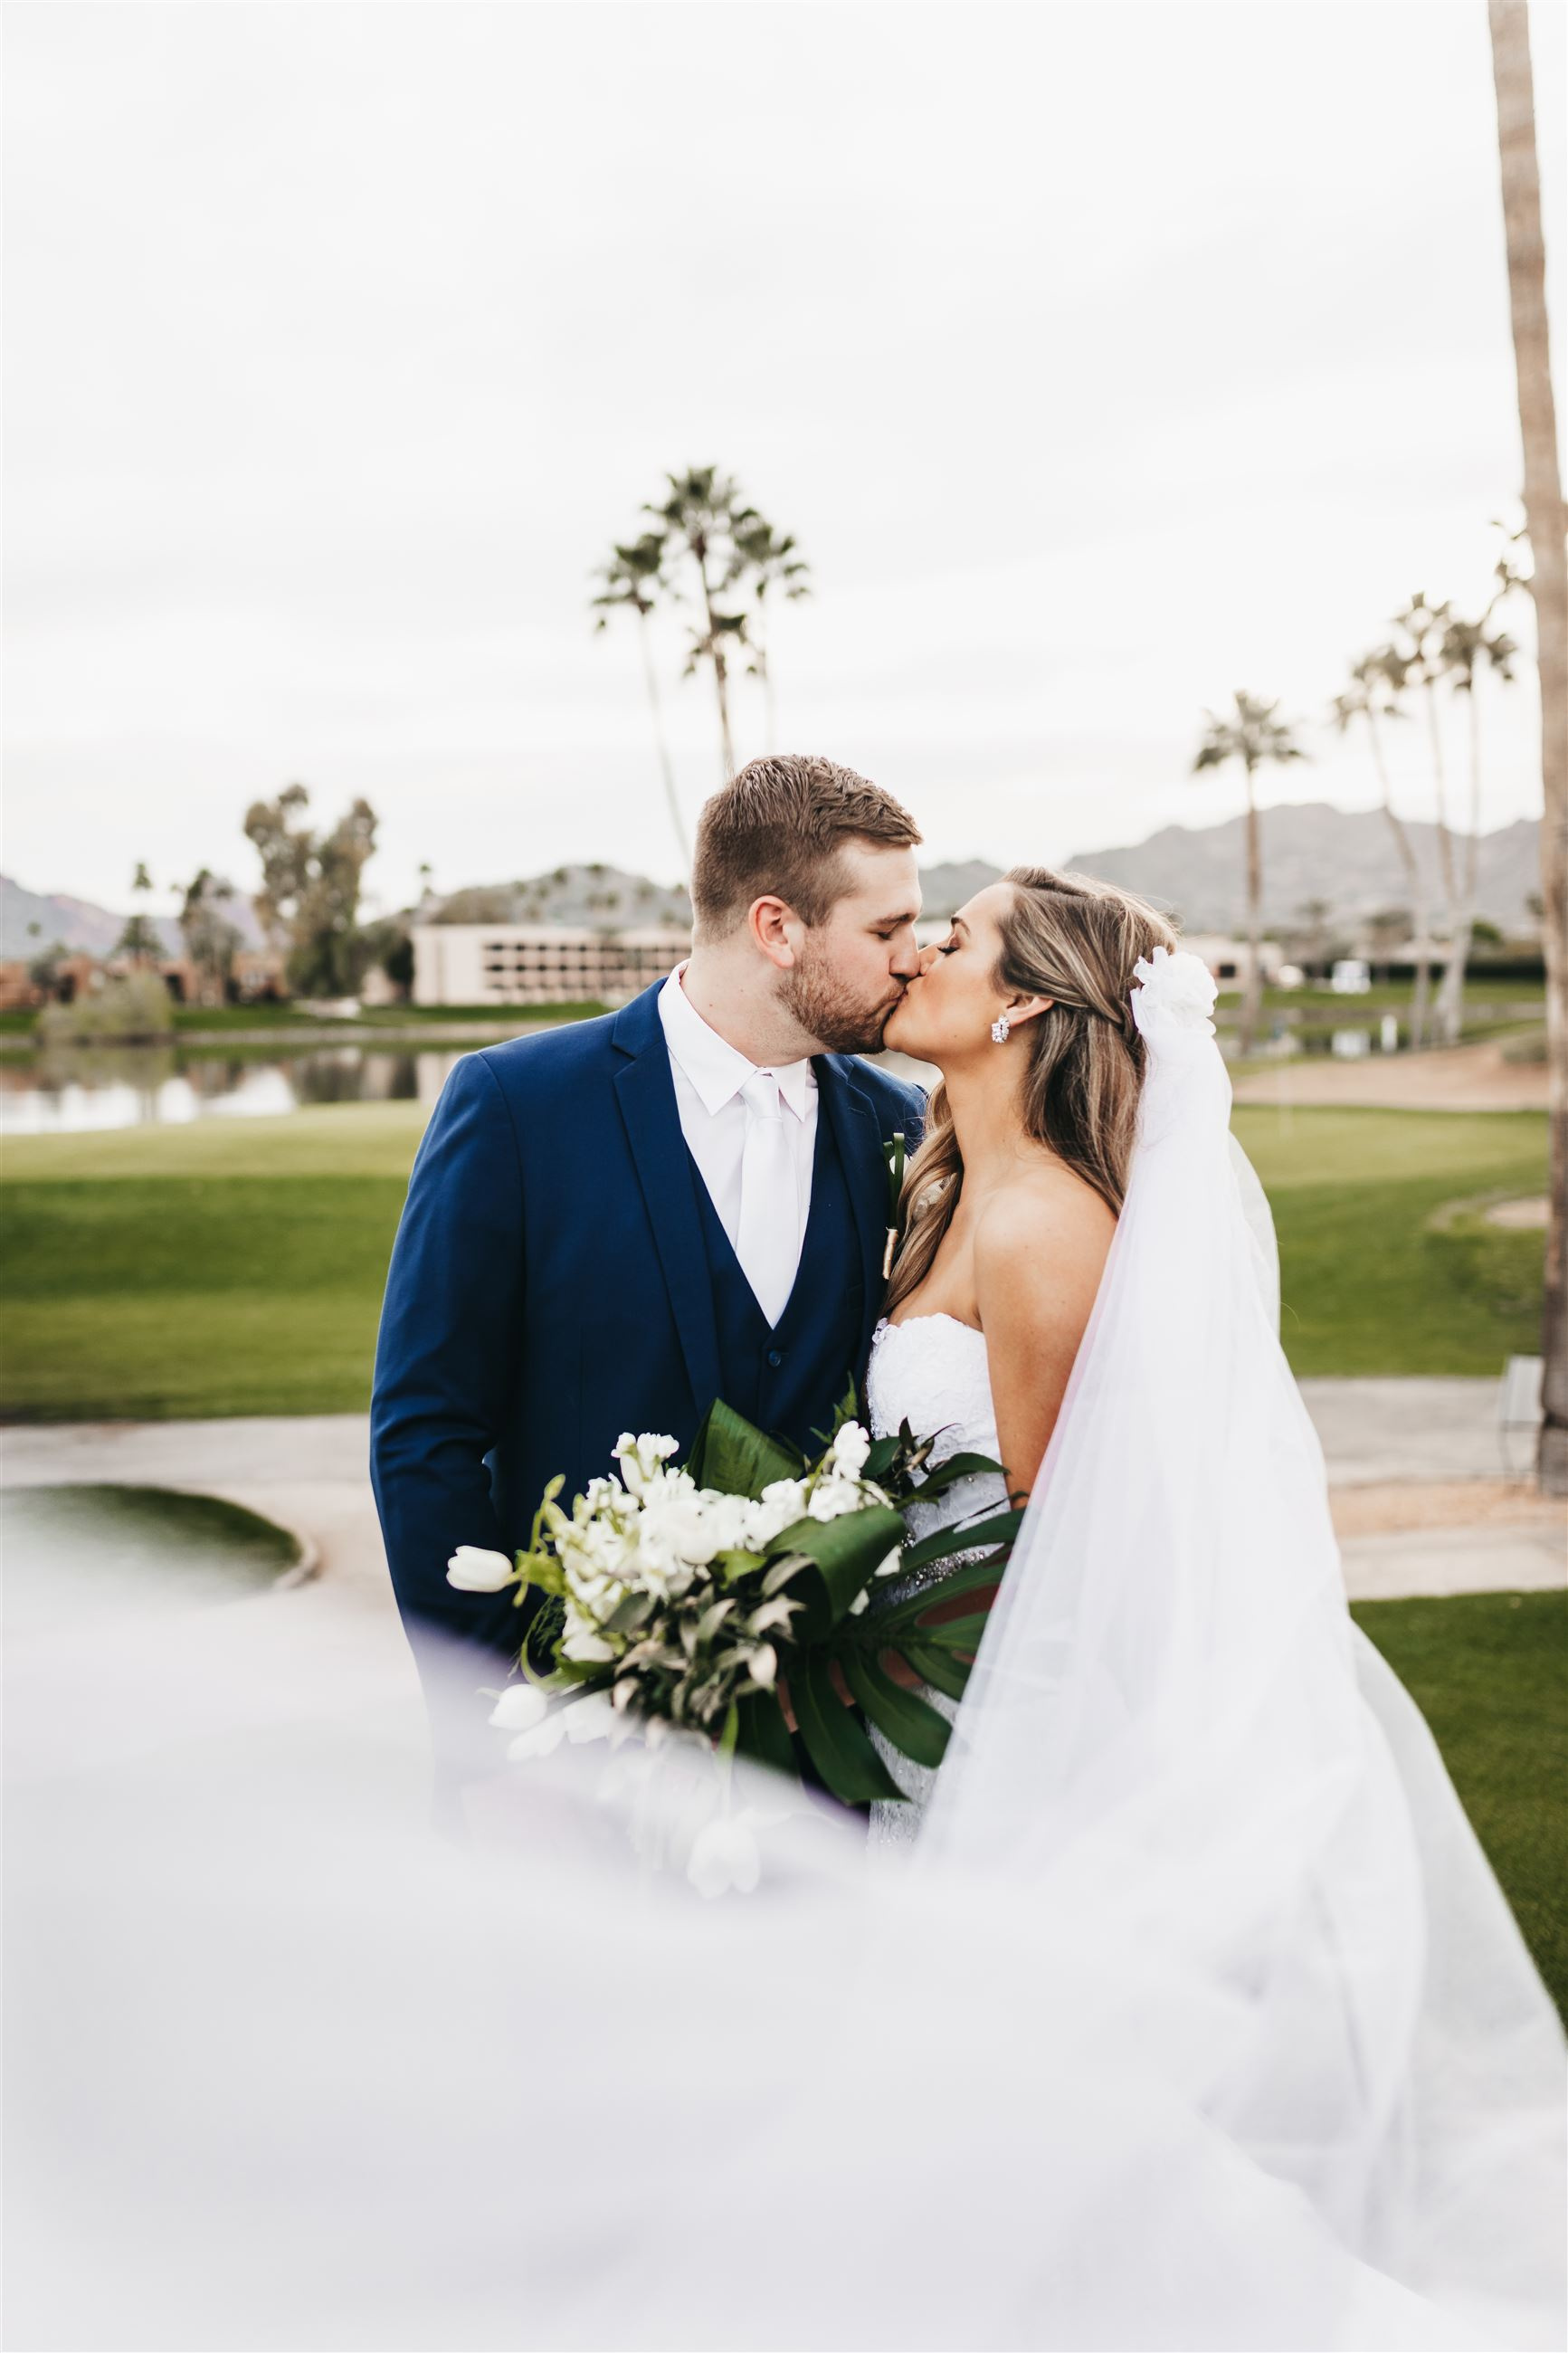 Our Brilliant Bride Summer | McCormick Ranch Golf Club Image